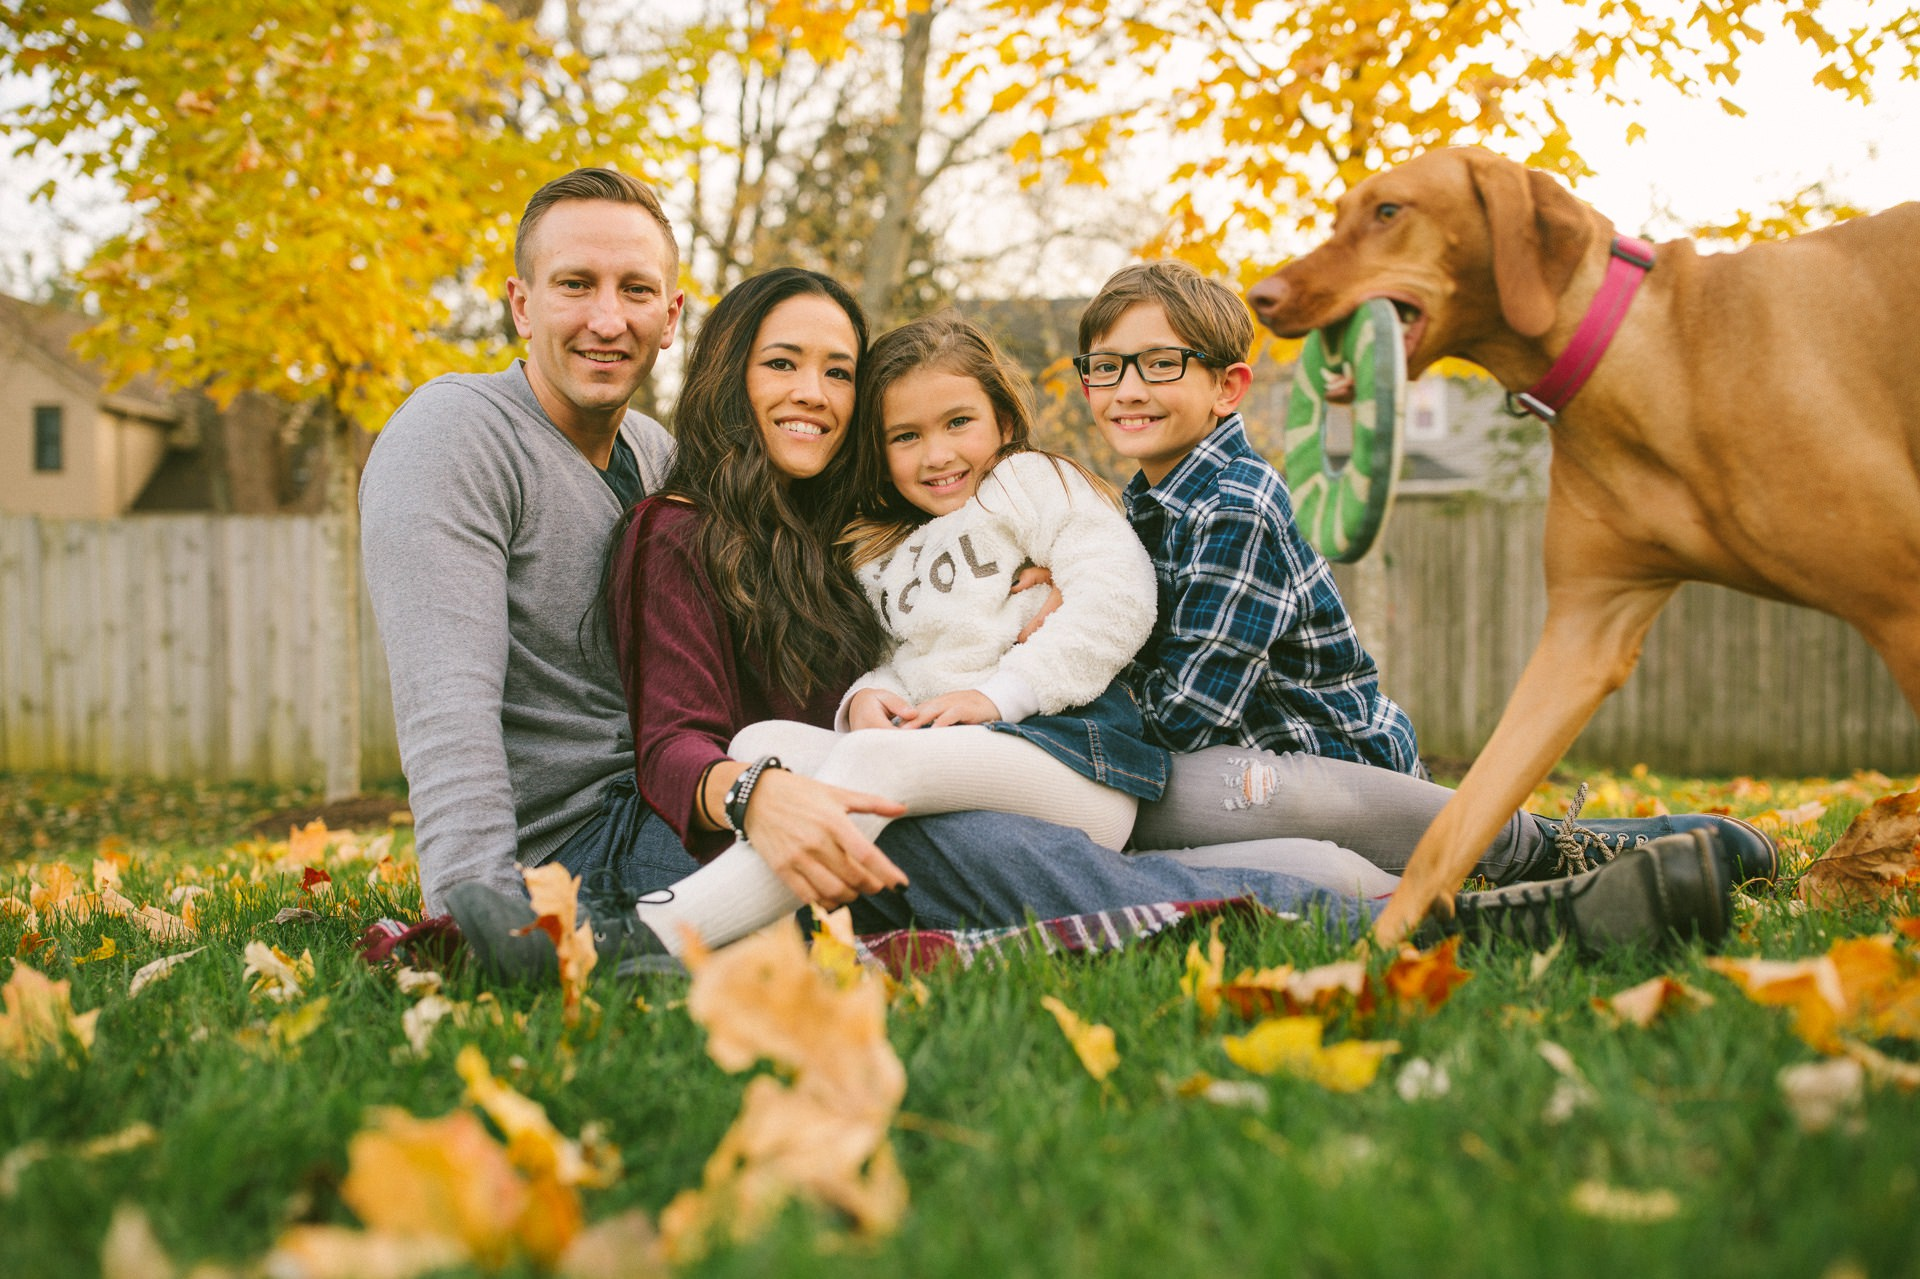 Westlake Ohio Family Portrait Photographer The Roths 23.jpg